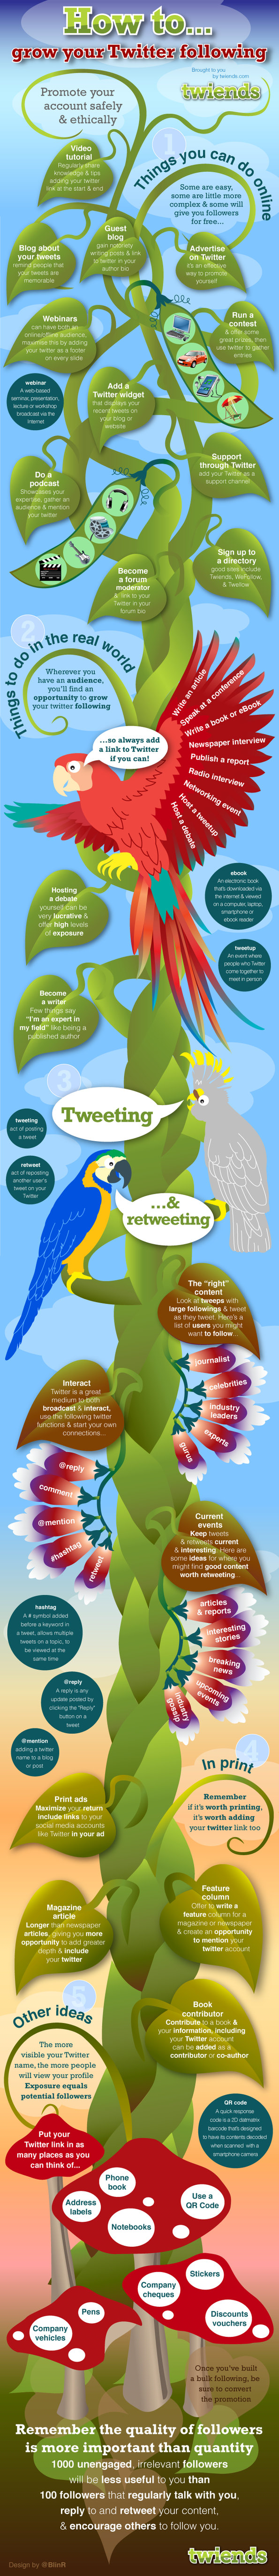 How to Gain Twitter Followers